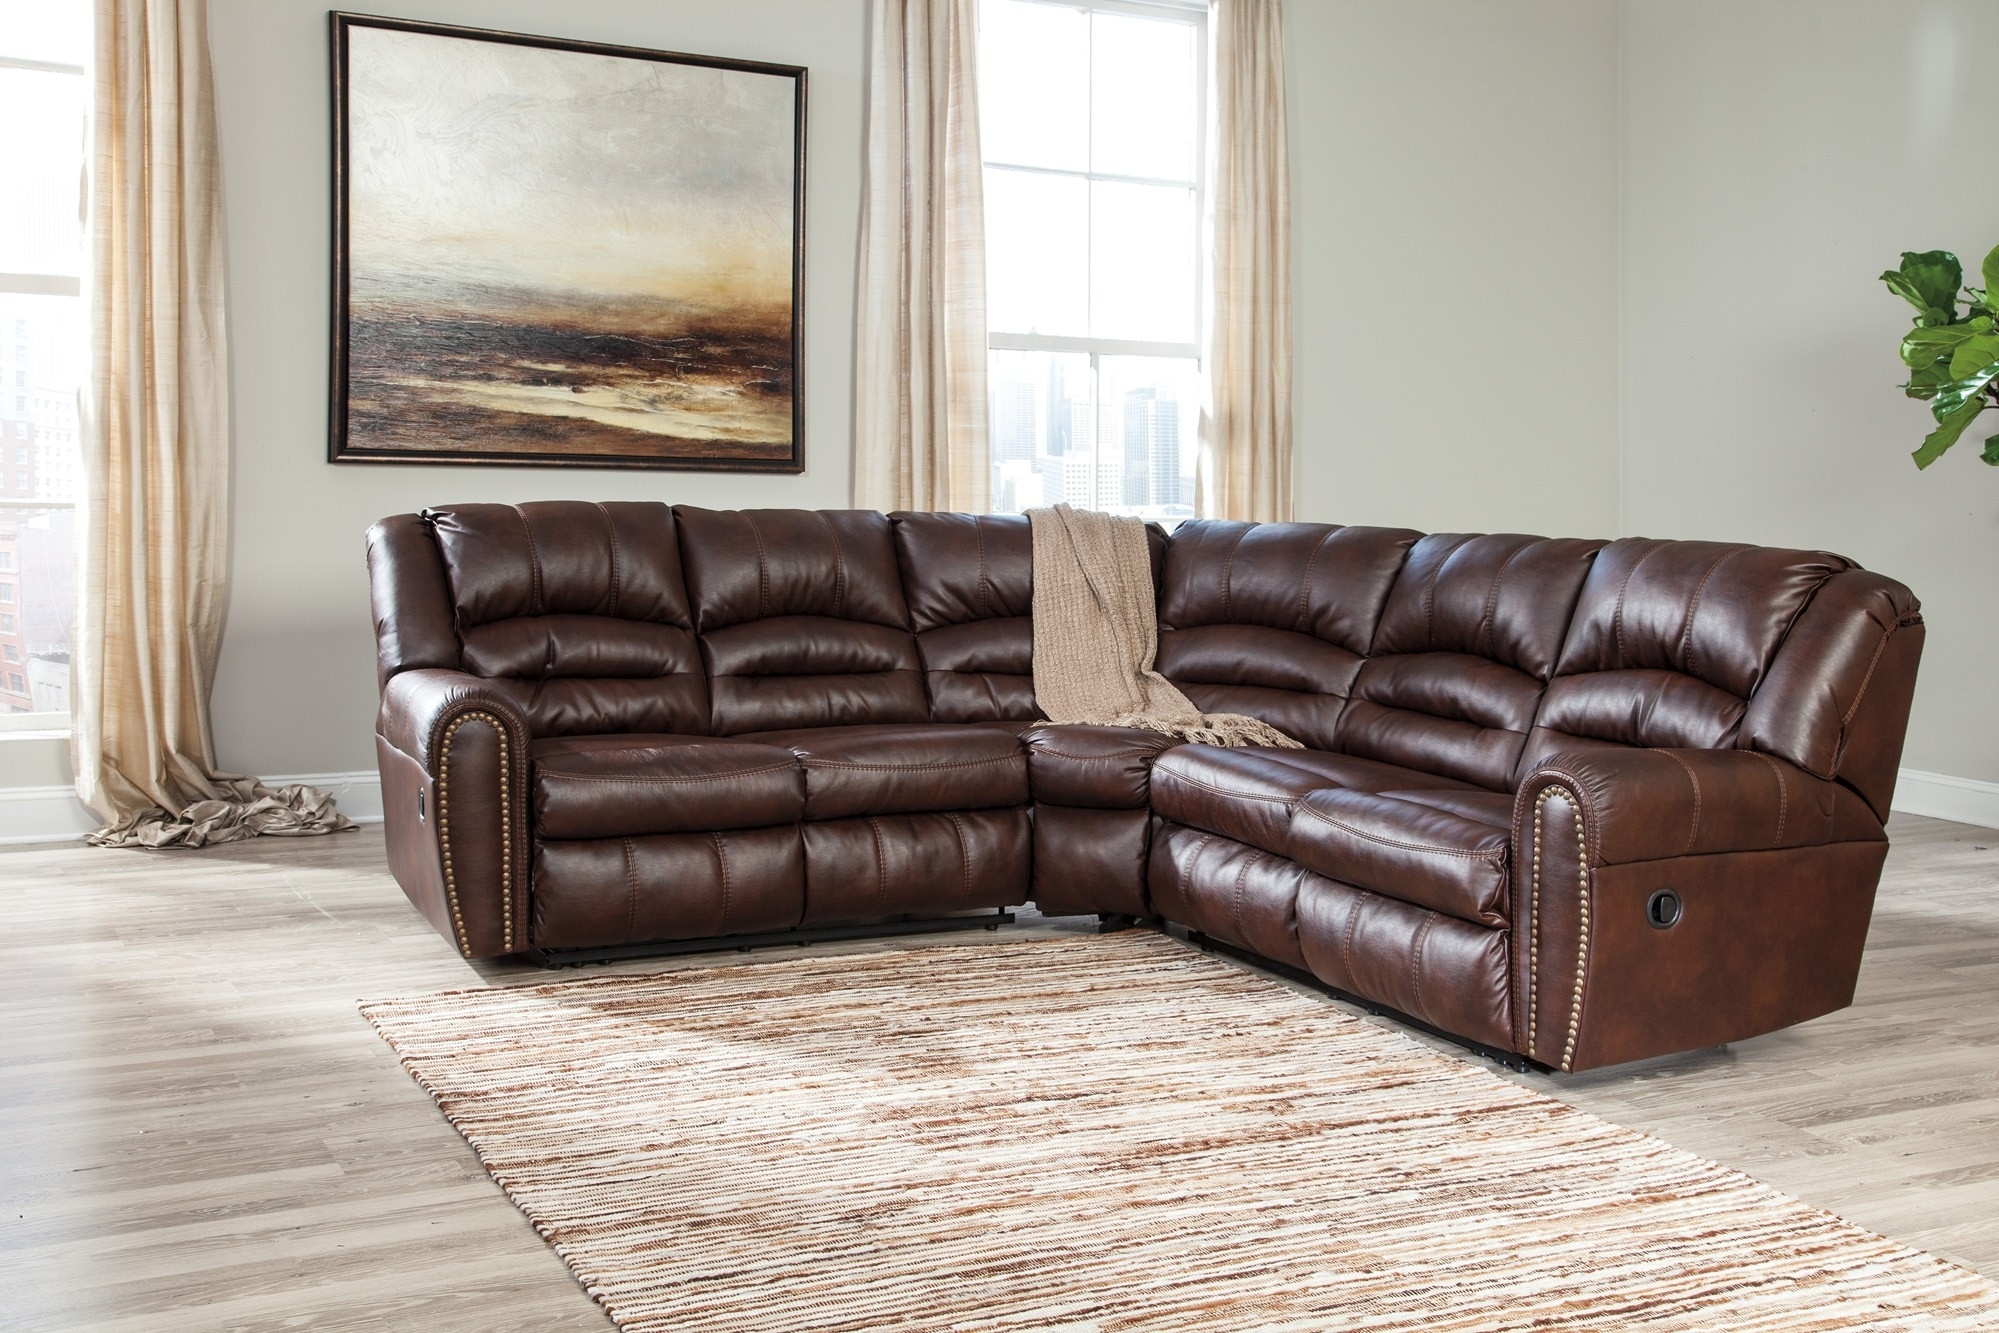 Manzanola Chocolate 2 Piece Sectional Sofa For $1, (View 4 of 10)